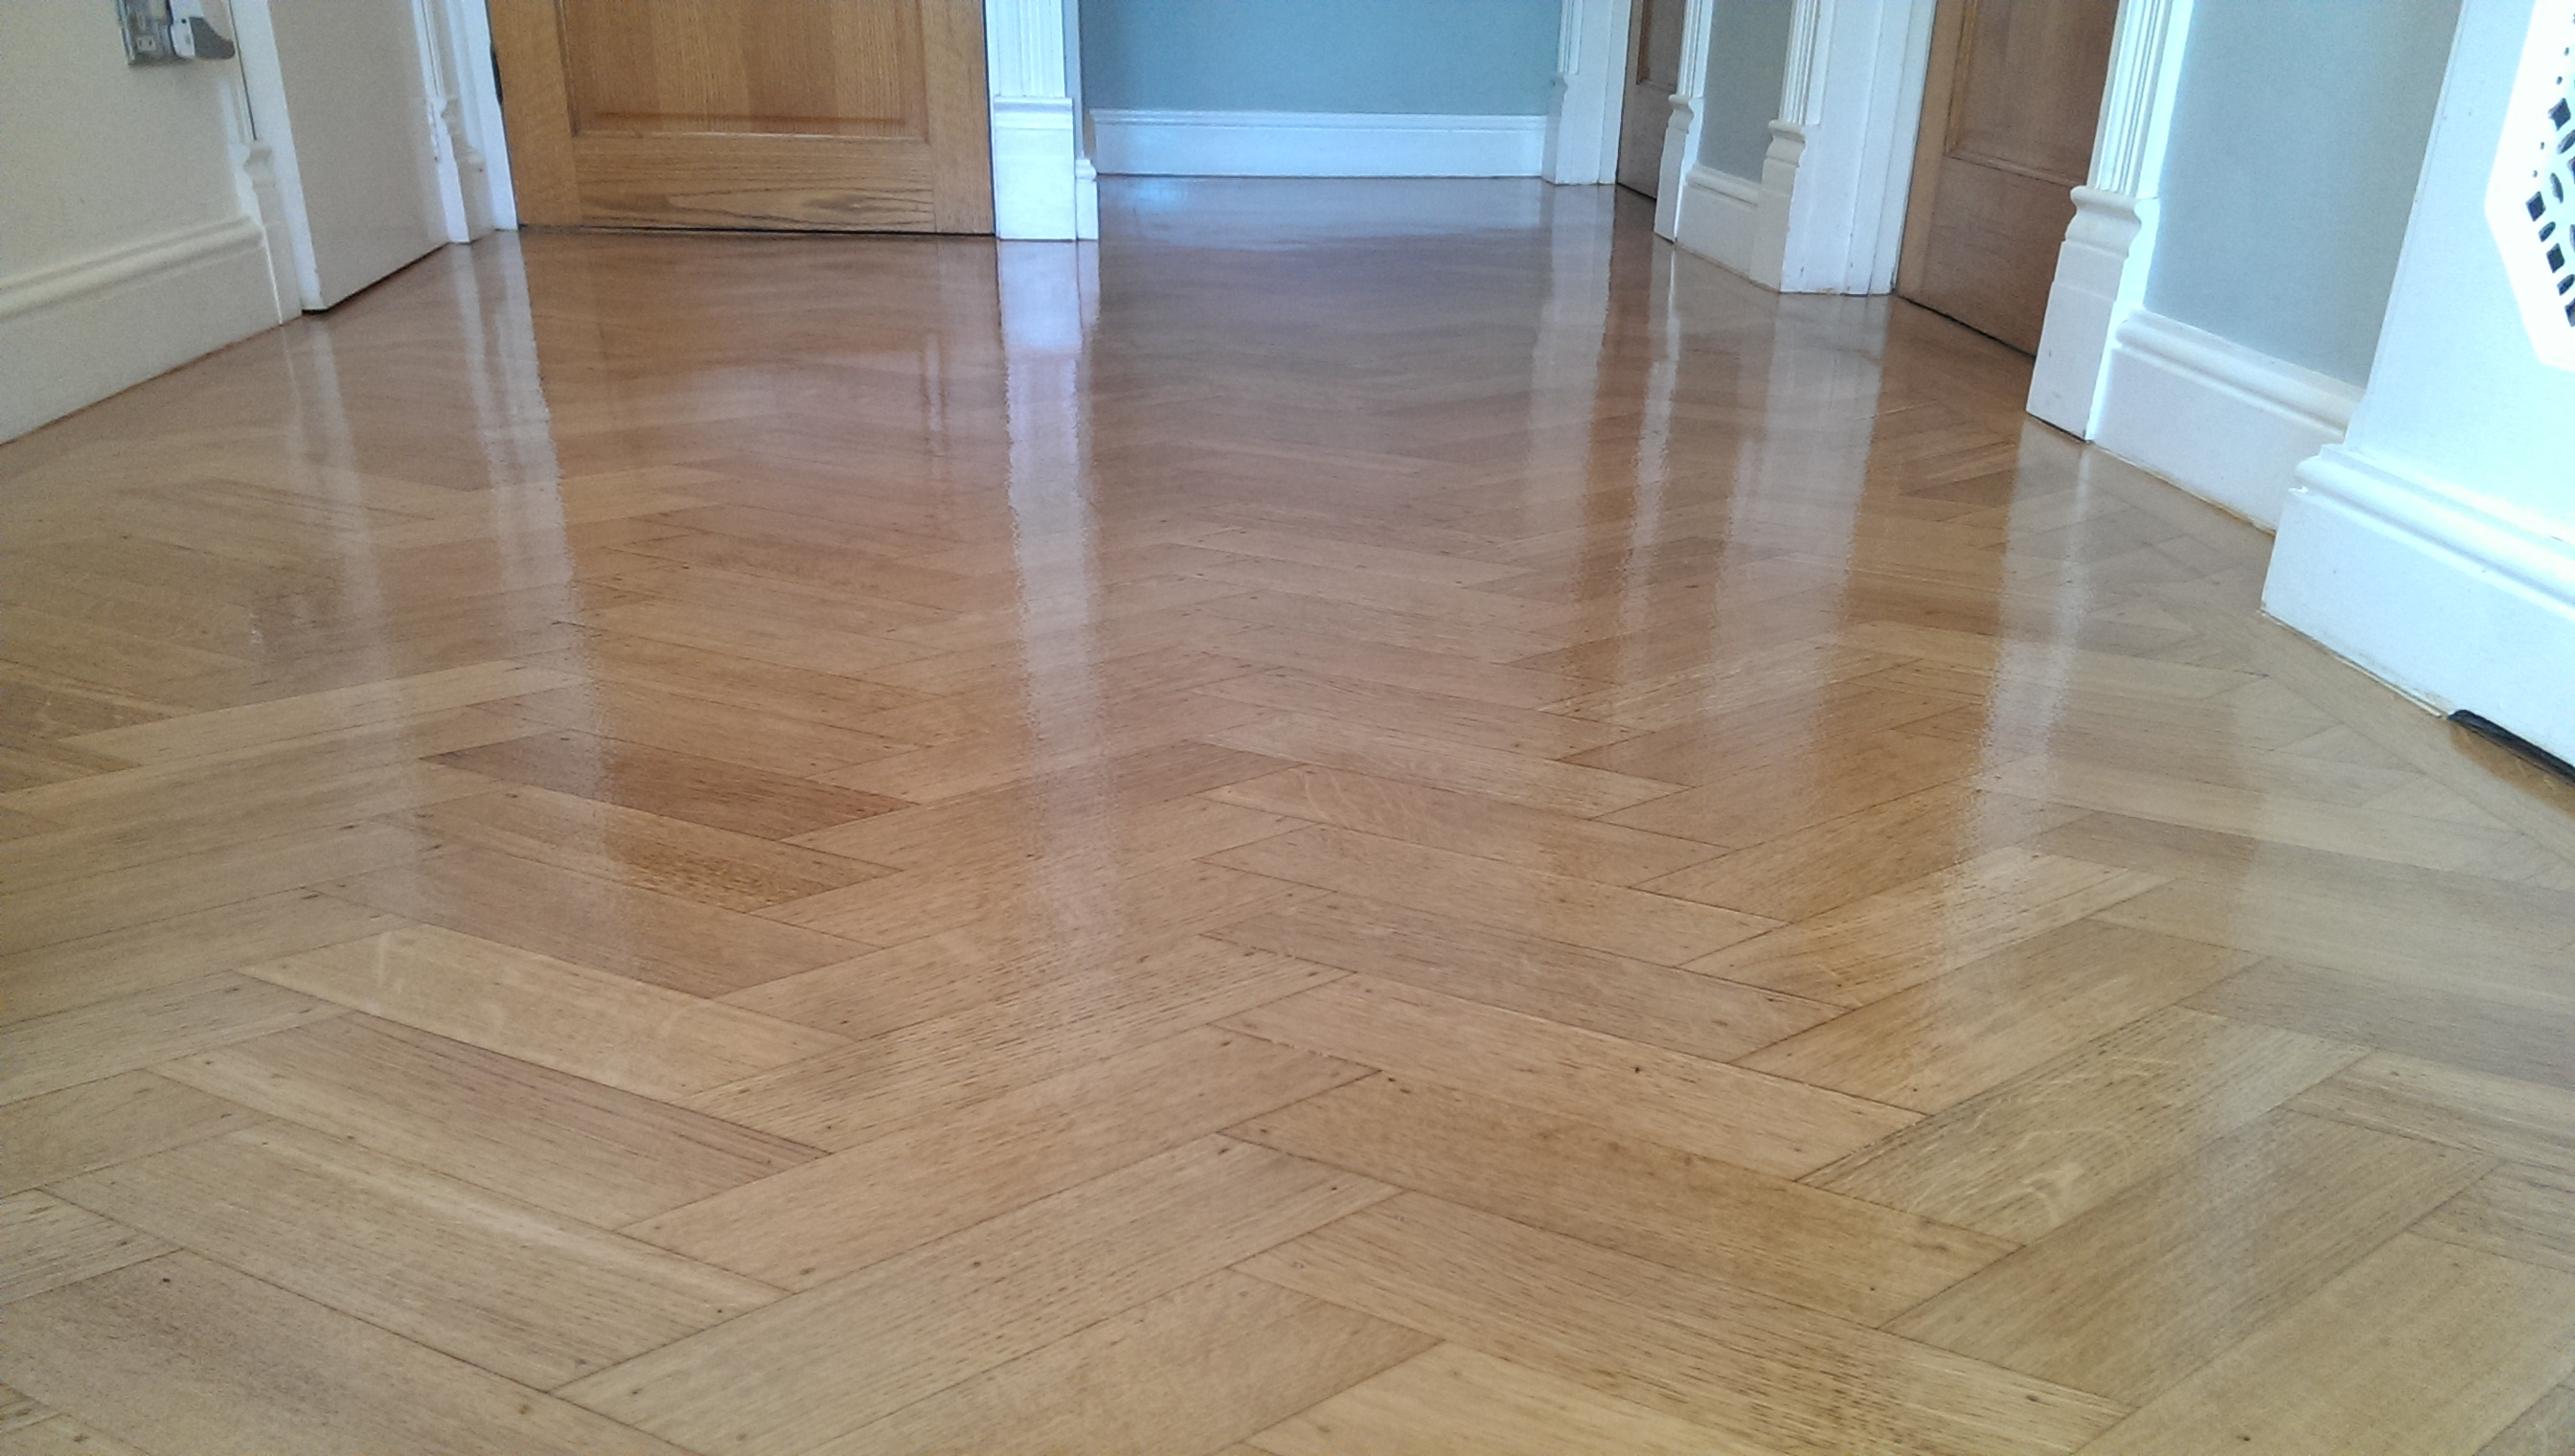 Wooden Floor Sanding And Refinishing Services Wood